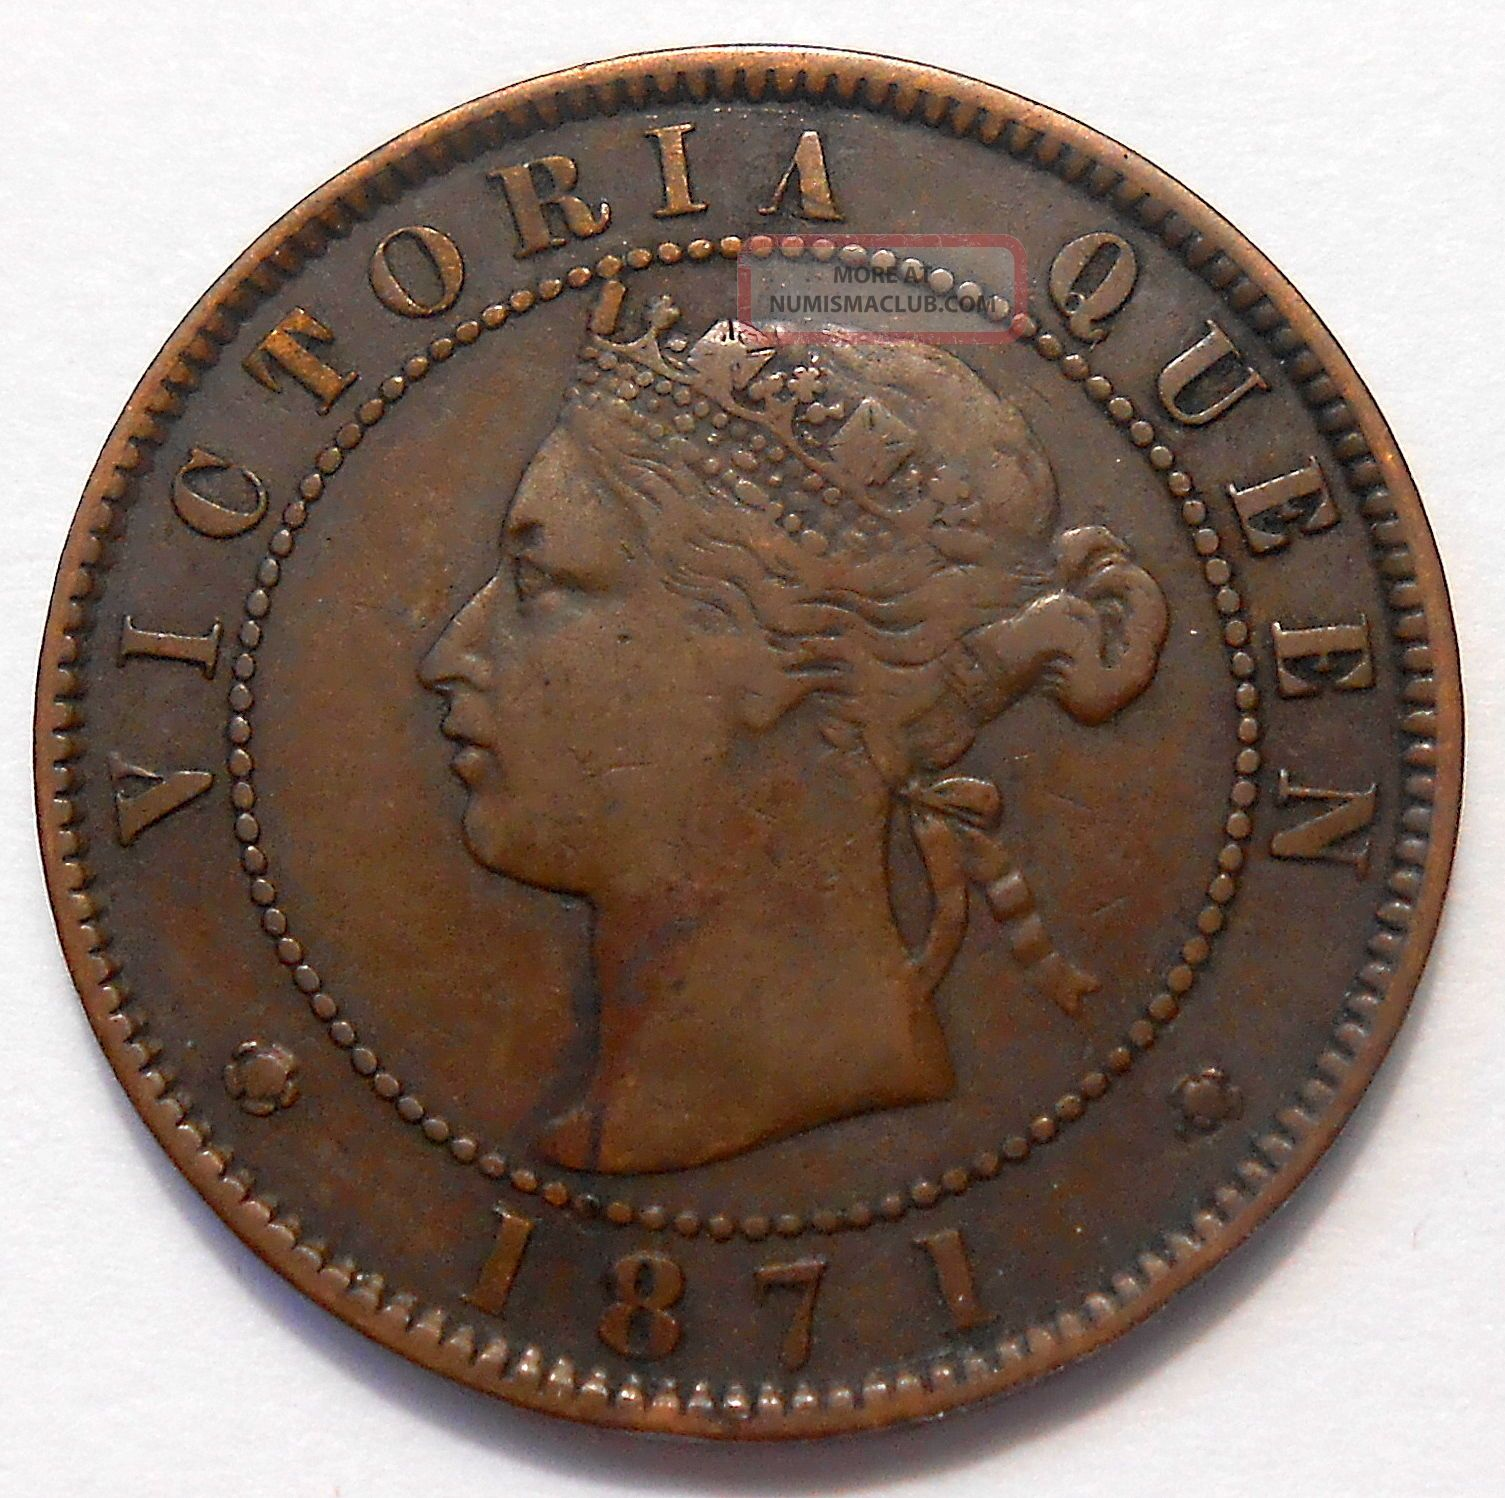 1871 Prince Edward Island Large Cent Vf Sharp Only Victoria Pei Penny Coins: Canada photo